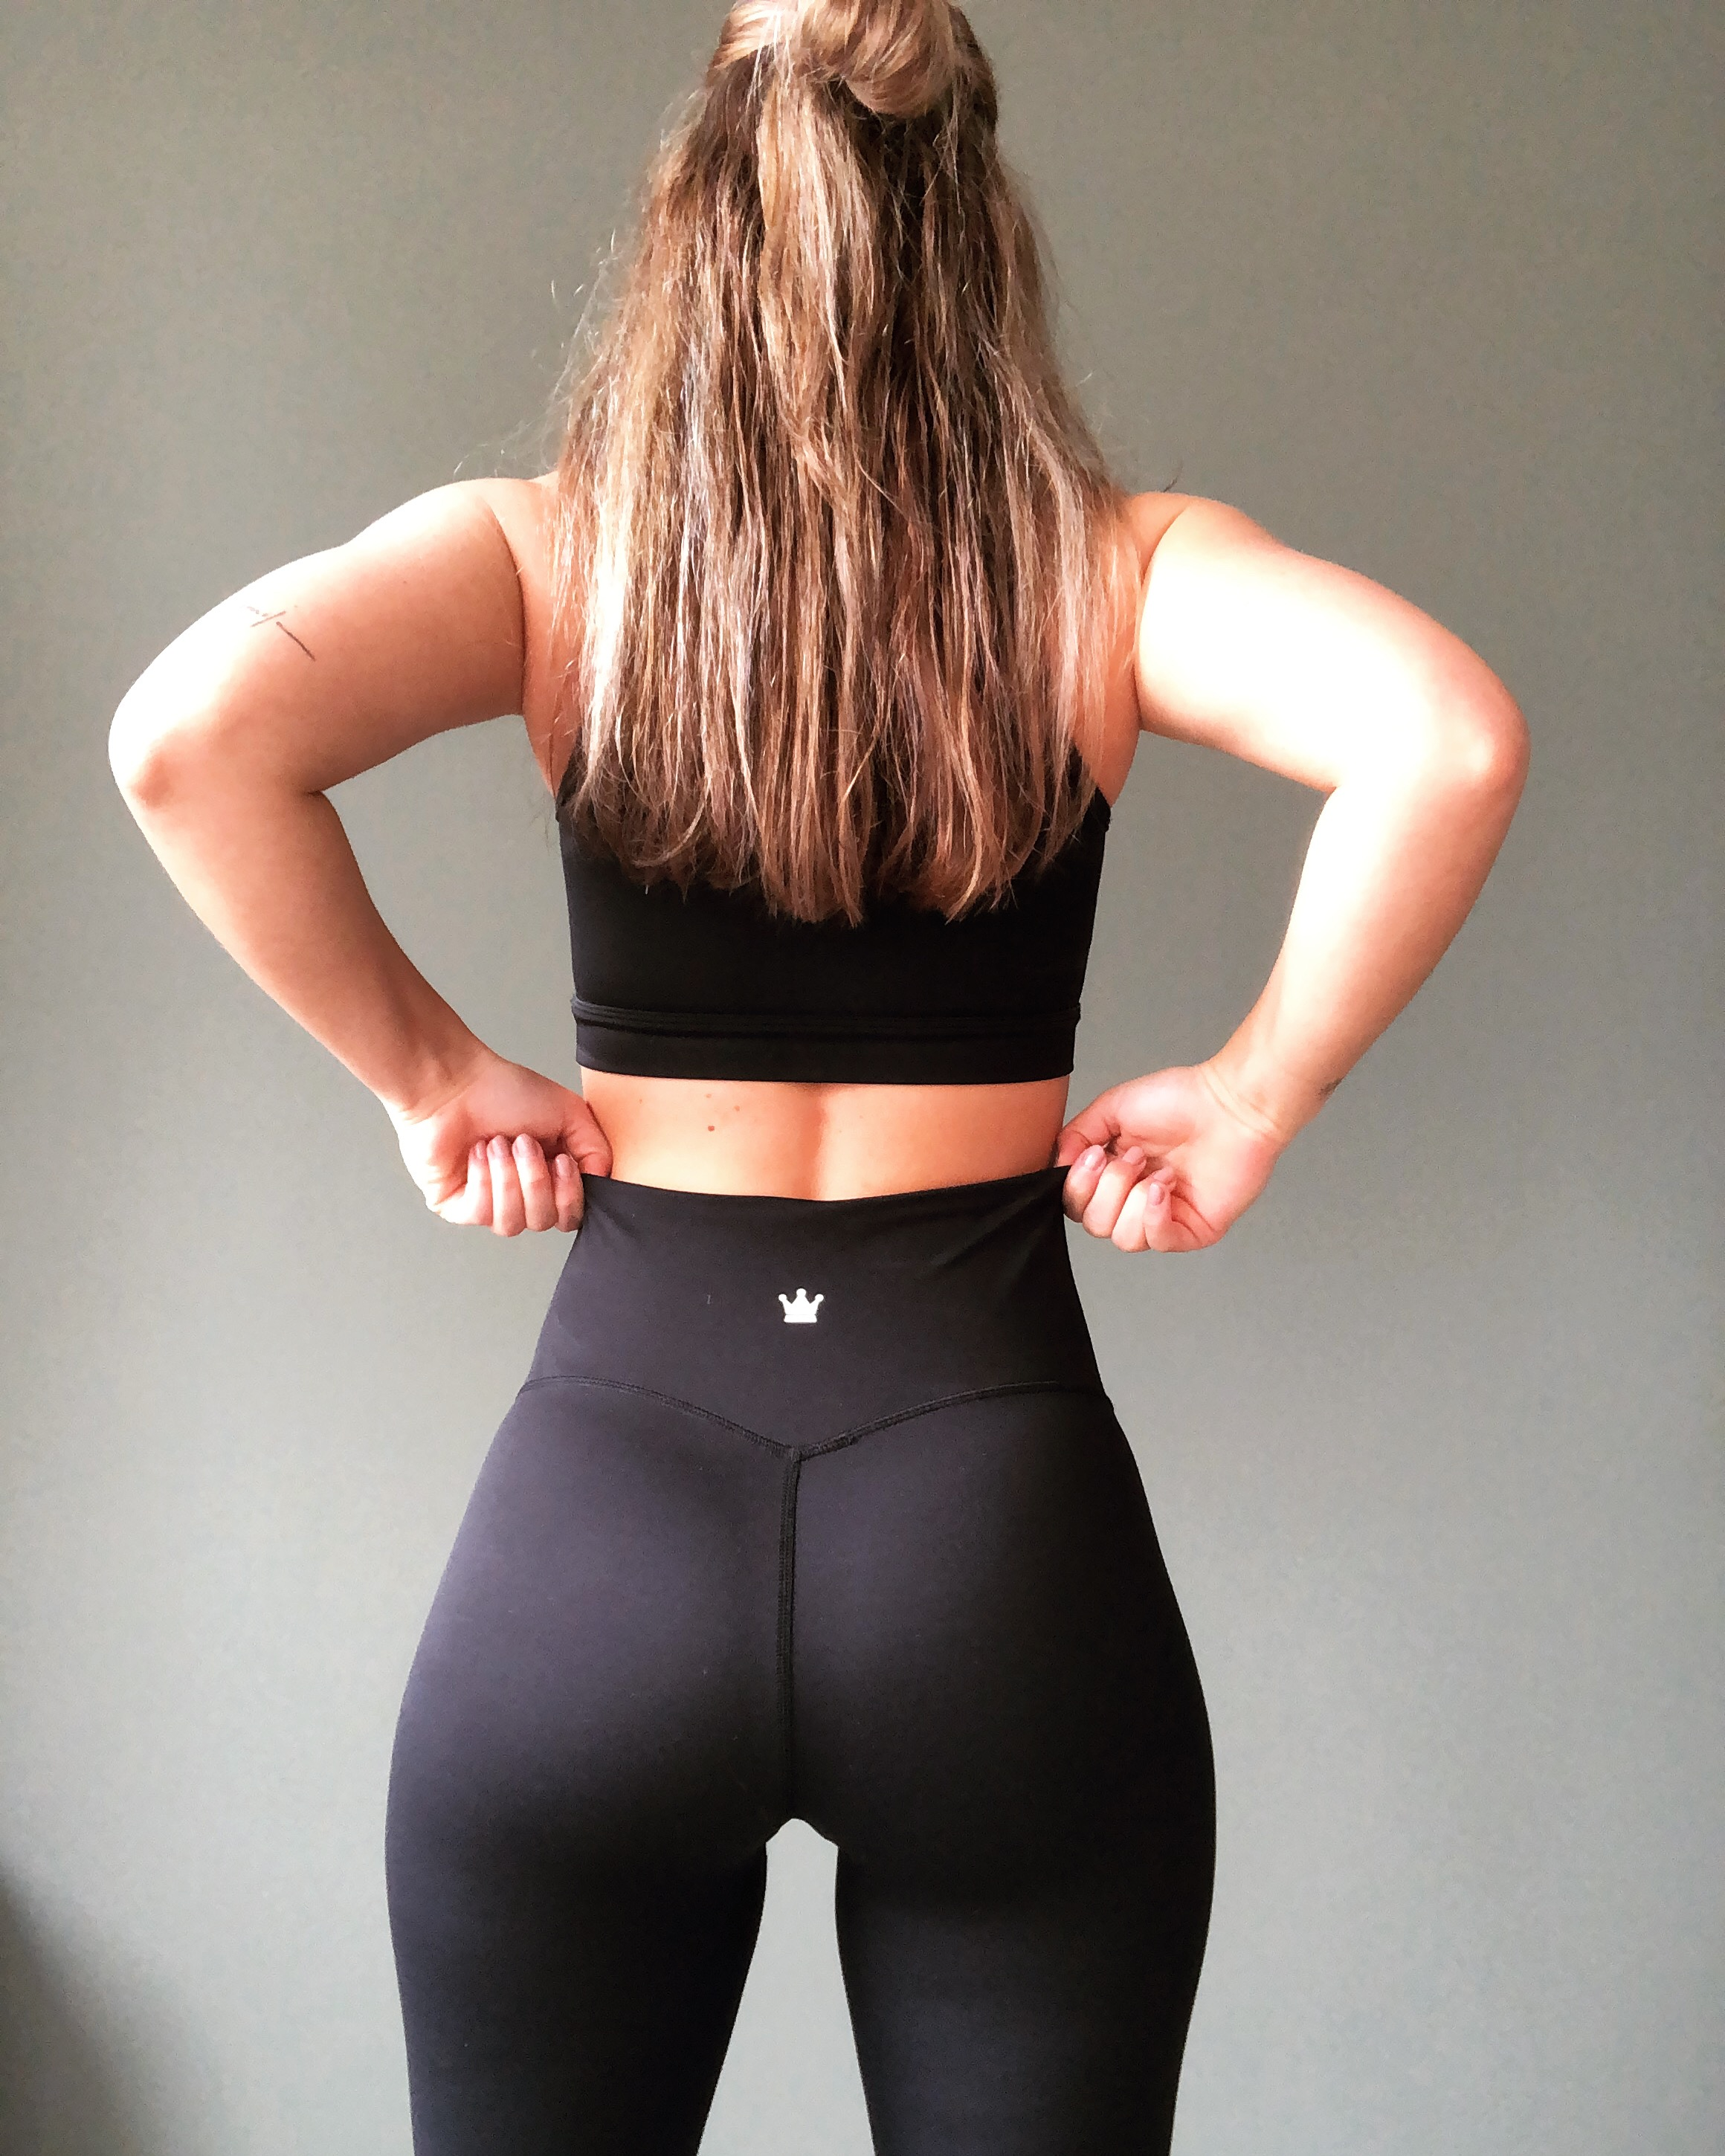 gymchamp, gymchamp sportswear, sportkleding, sportlegging, legging, sport top, top, sport bh, tight, tights, sportoutfit, ootd, outfit, blog, blogger, xmariekie, influencer, fit, fitness, fitfam, fitdutchie, fitdutchies, fitgirl